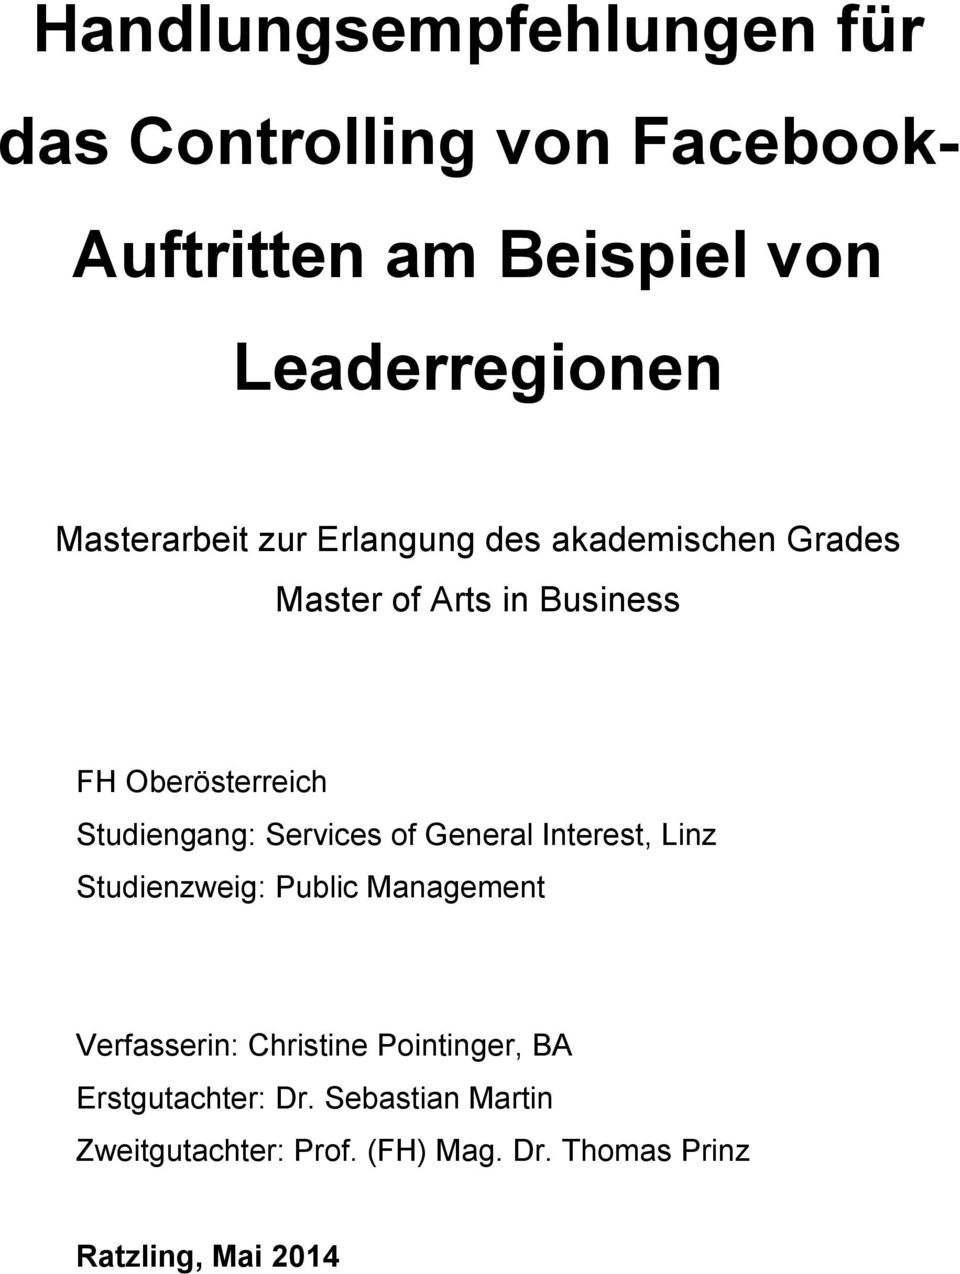 Studiengang: Services of General Interest, Linz Studienzweig: Public Management Verfasserin: Christine